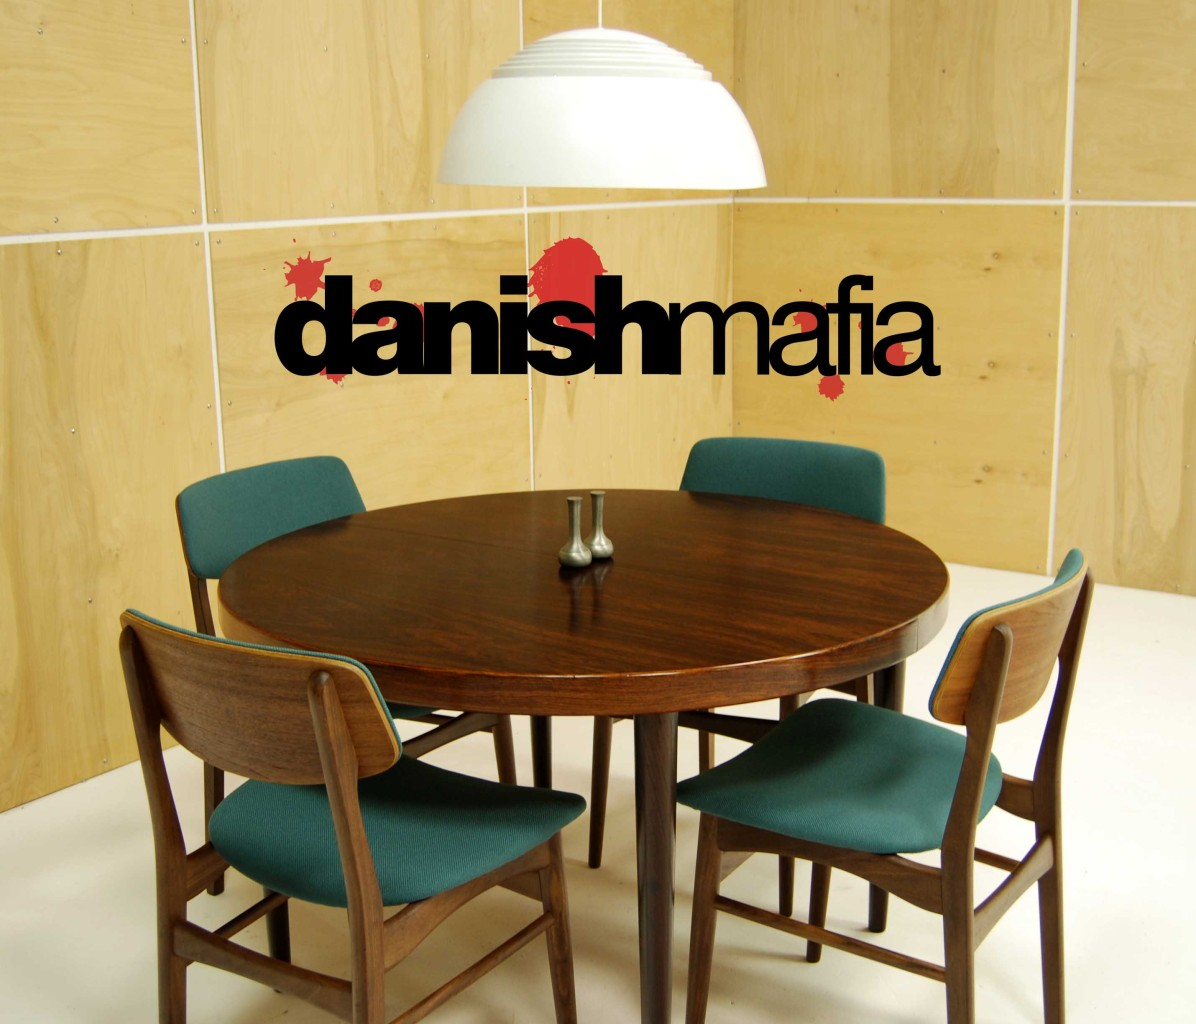 mid century danish modern rosewood round oval dining table w 1 leaf eames mid century kitchen table MID CENTURY DANISH ROSEWOOD ROUND DINING TABLE 9